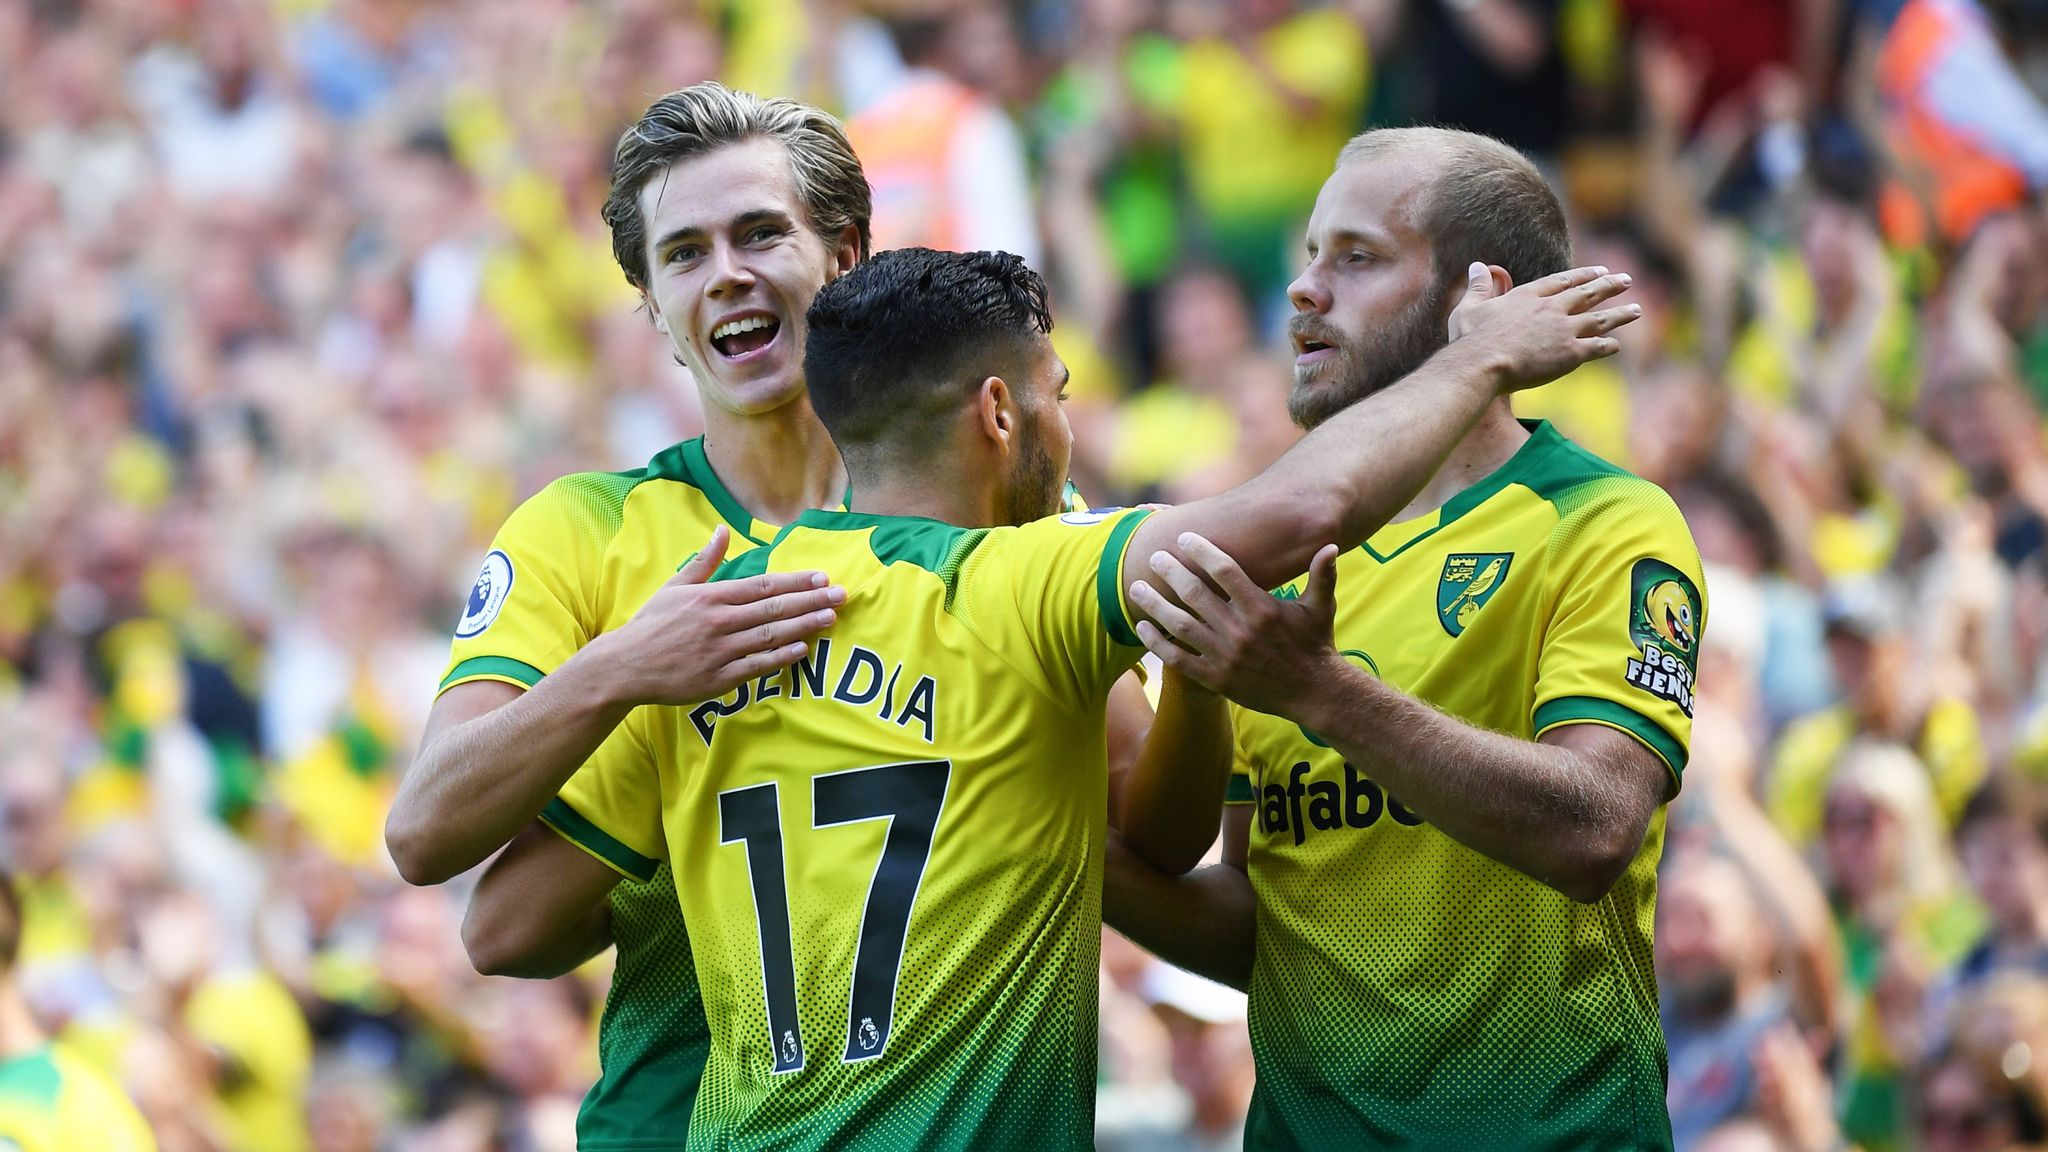 Norwich City 2-3 Chelsea: Tammy Abraham double hands Frank